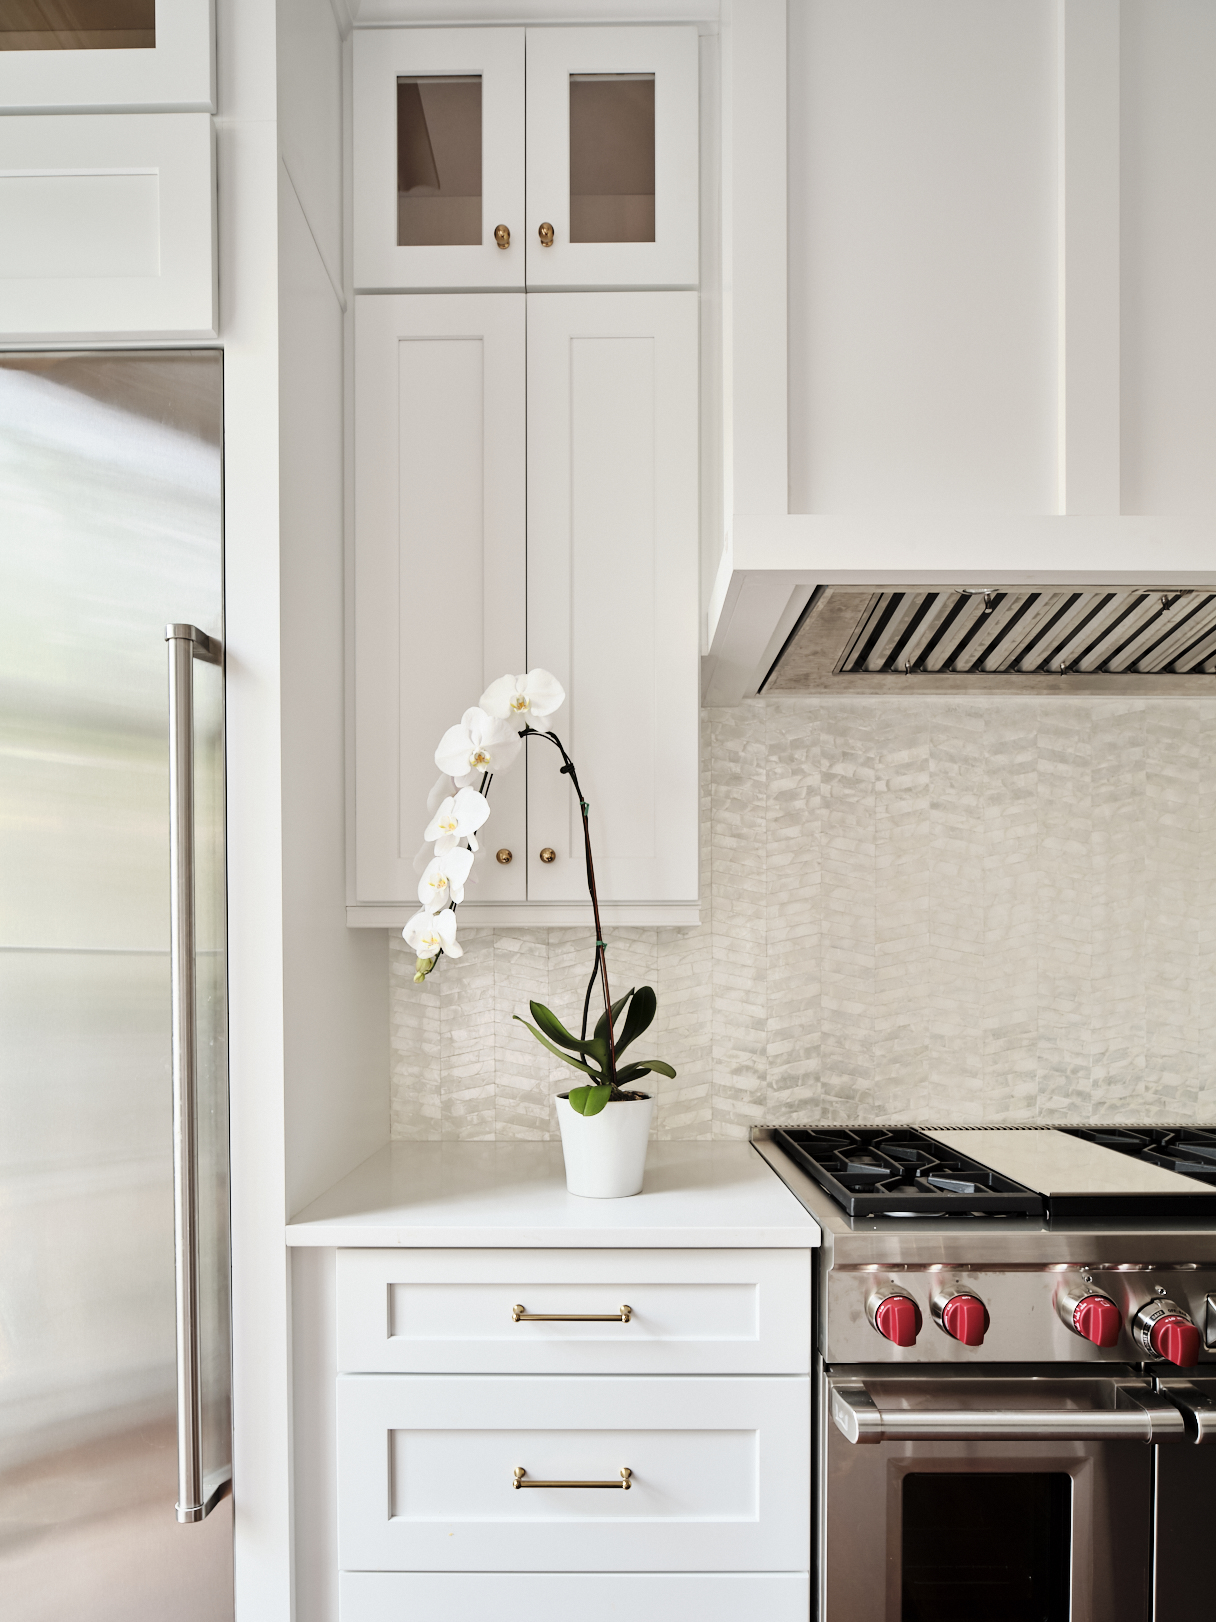 St_Charles_Finals_Web_Res-12 Tips To Consider When Remodeling a Kitchen from New Orleans Designer, April Vogt